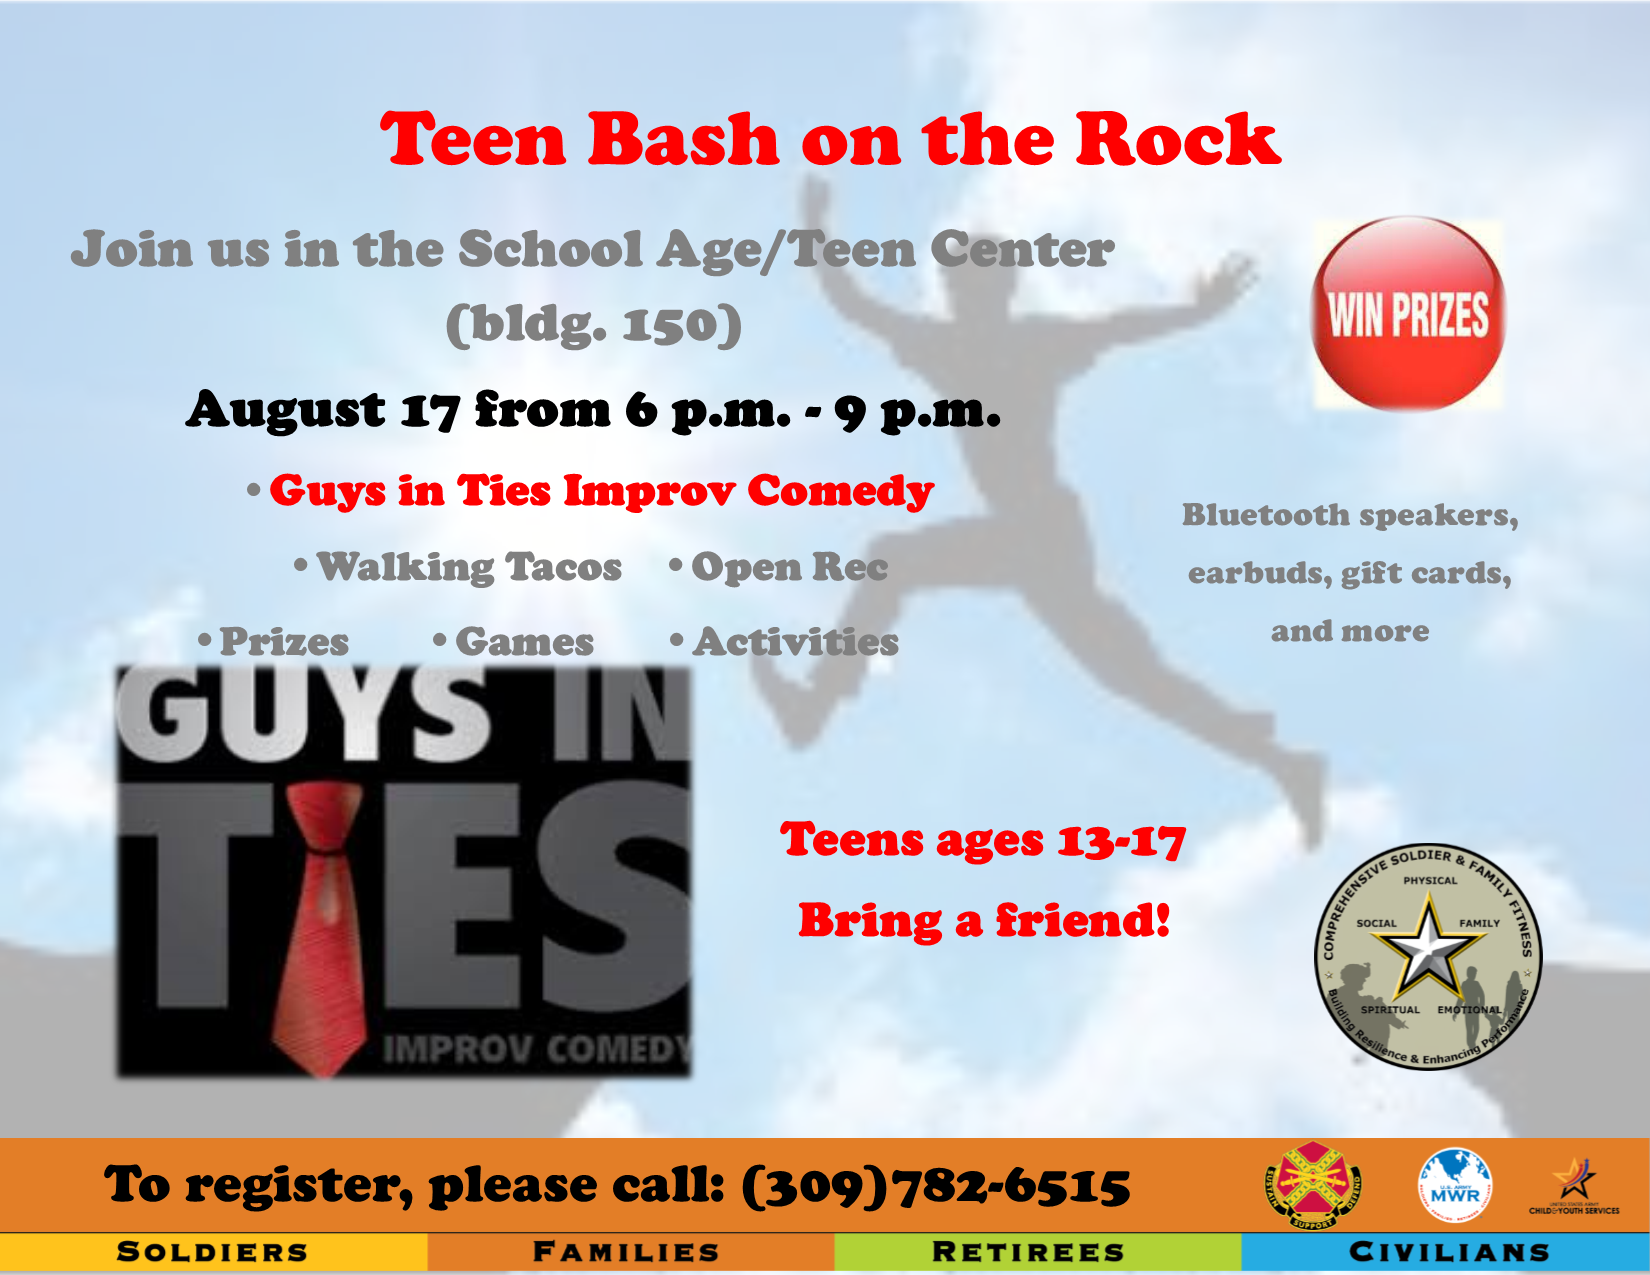 Teen Bash on the Rock